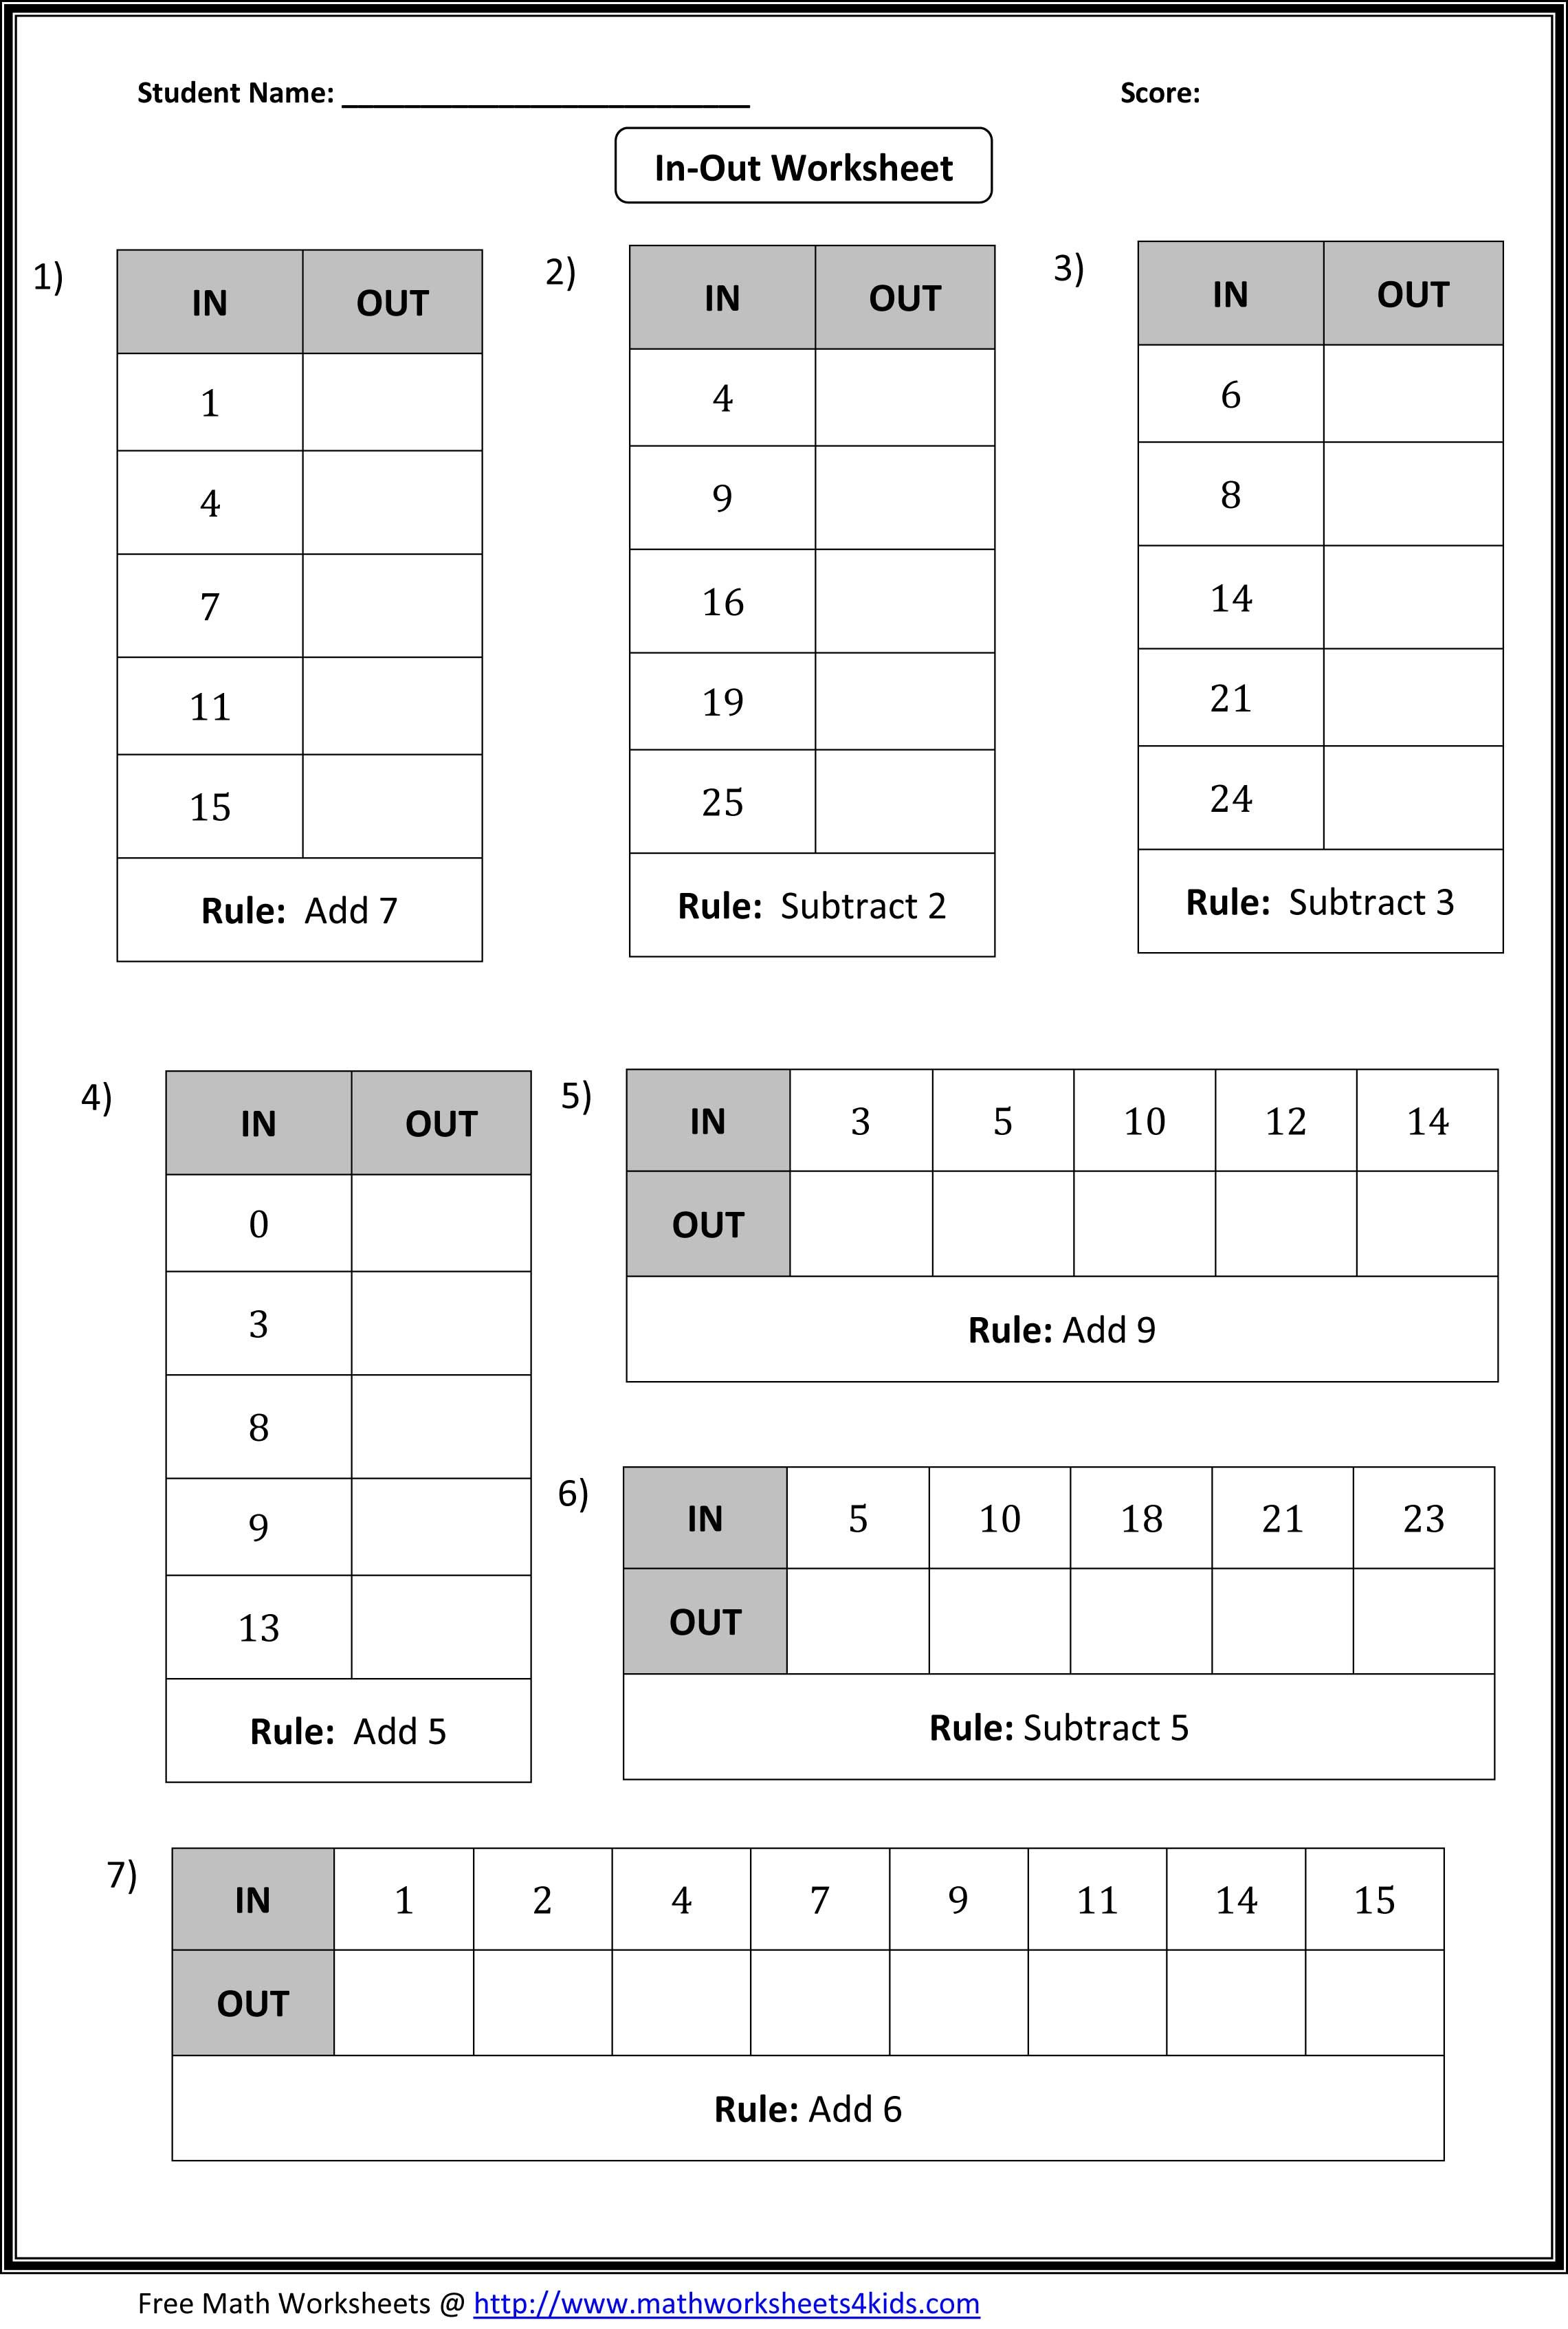 medium resolution of In and Out Worksheets   Printable math worksheets